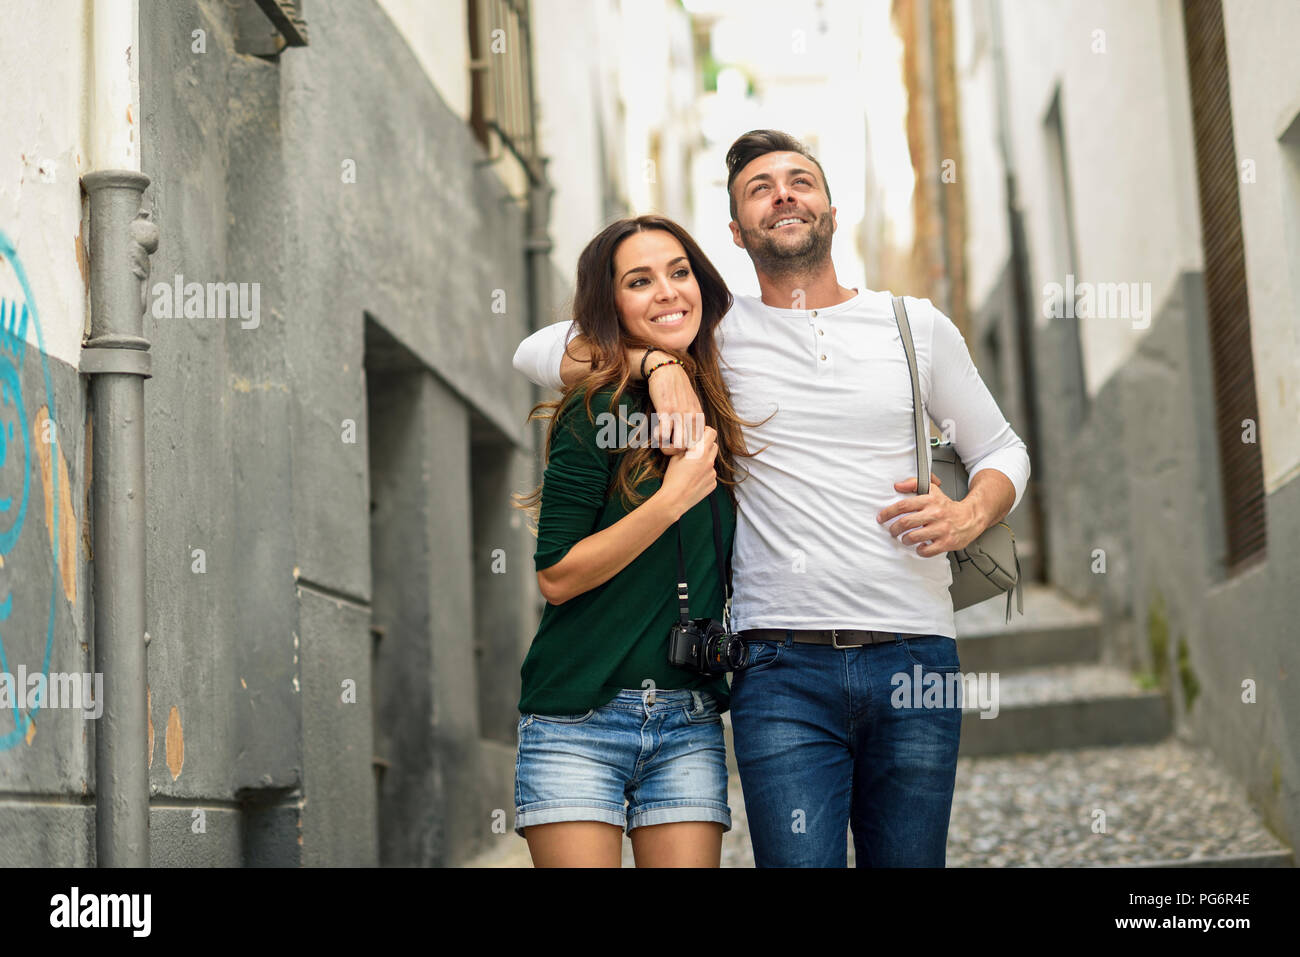 Happy tourist couple walking in the city - Stock Image